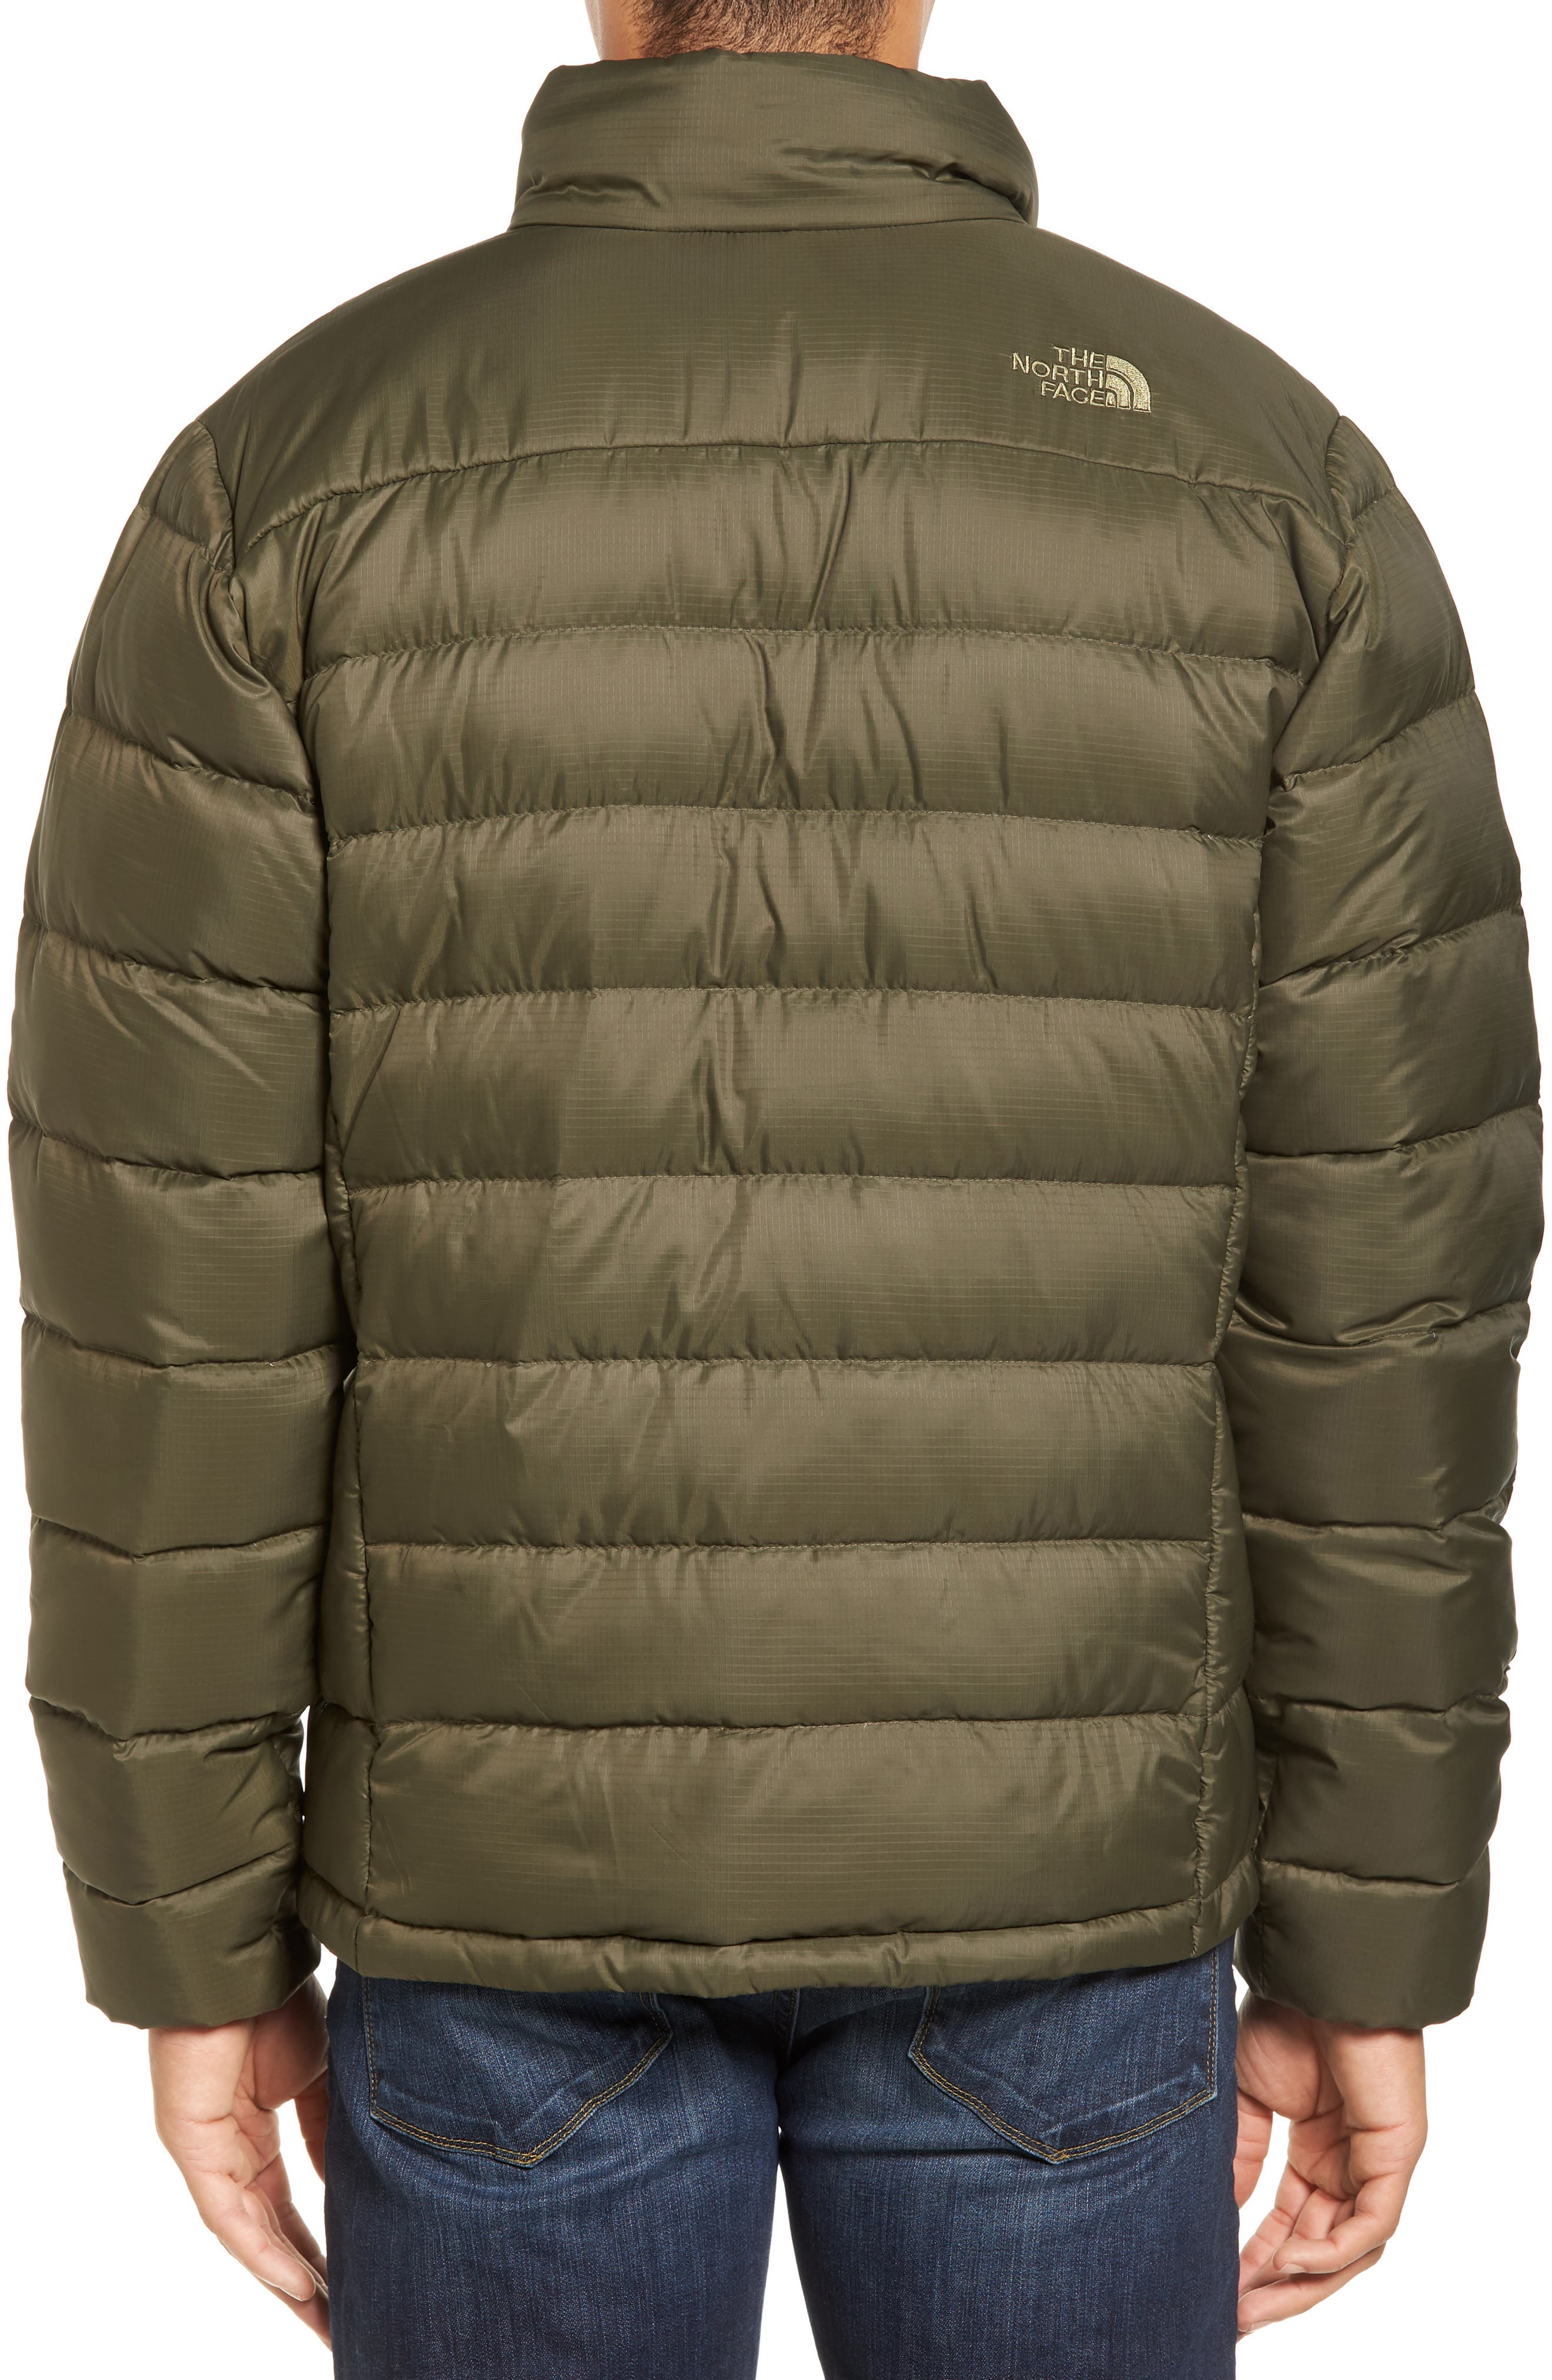 Alternate Image 2  - The North Face 'Aconcagua' Goose Down Jacket